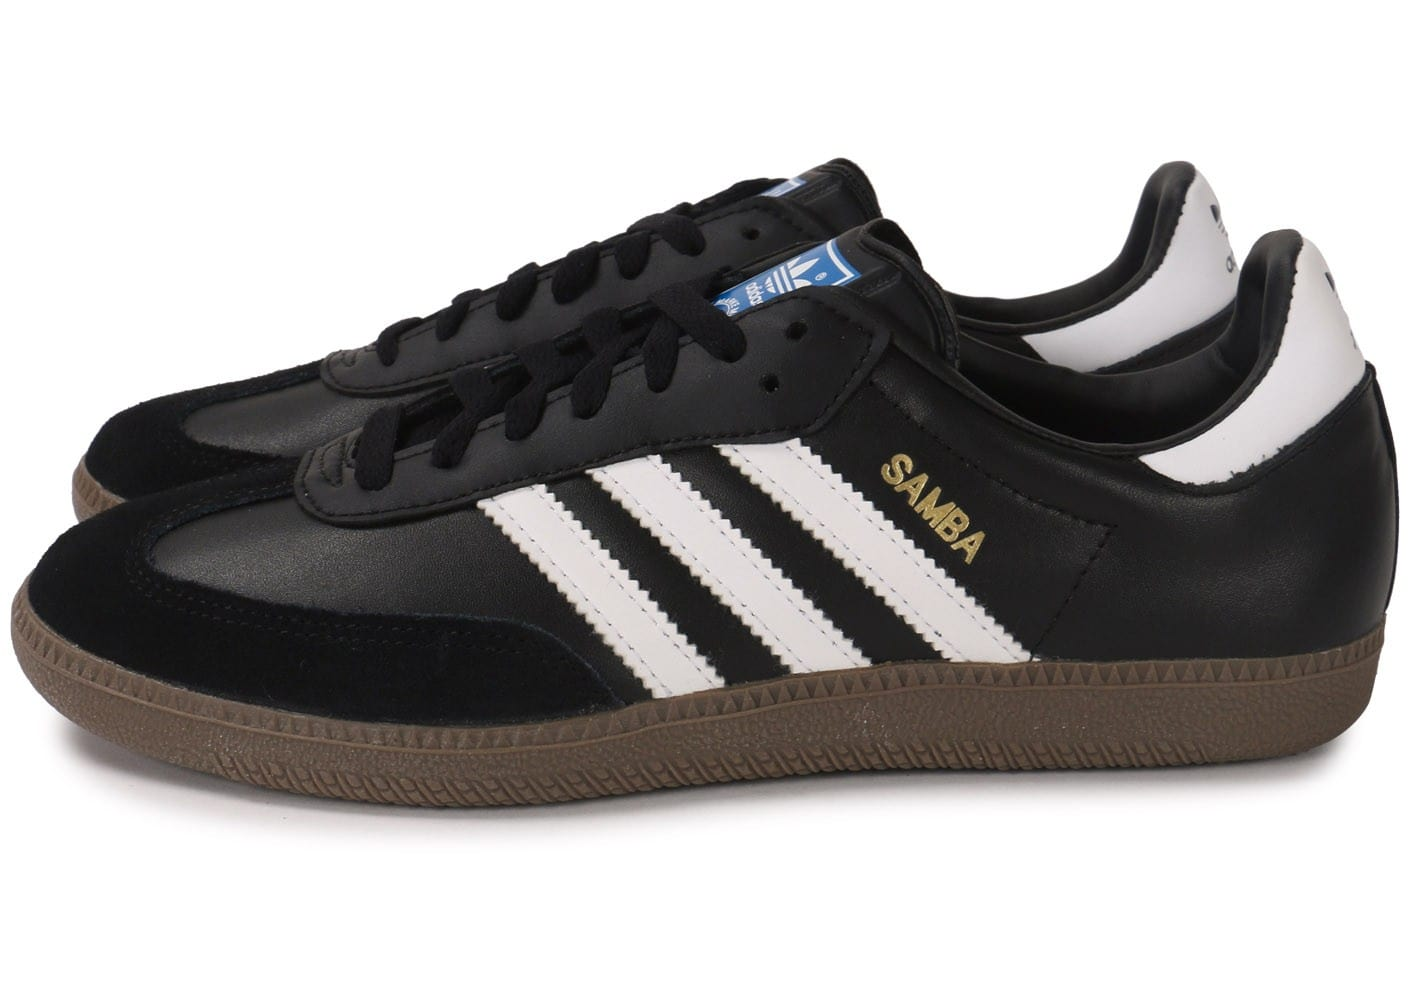 official site offer discounts coupon codes adidas Samba Noire - Chaussures Baskets homme - Chausport